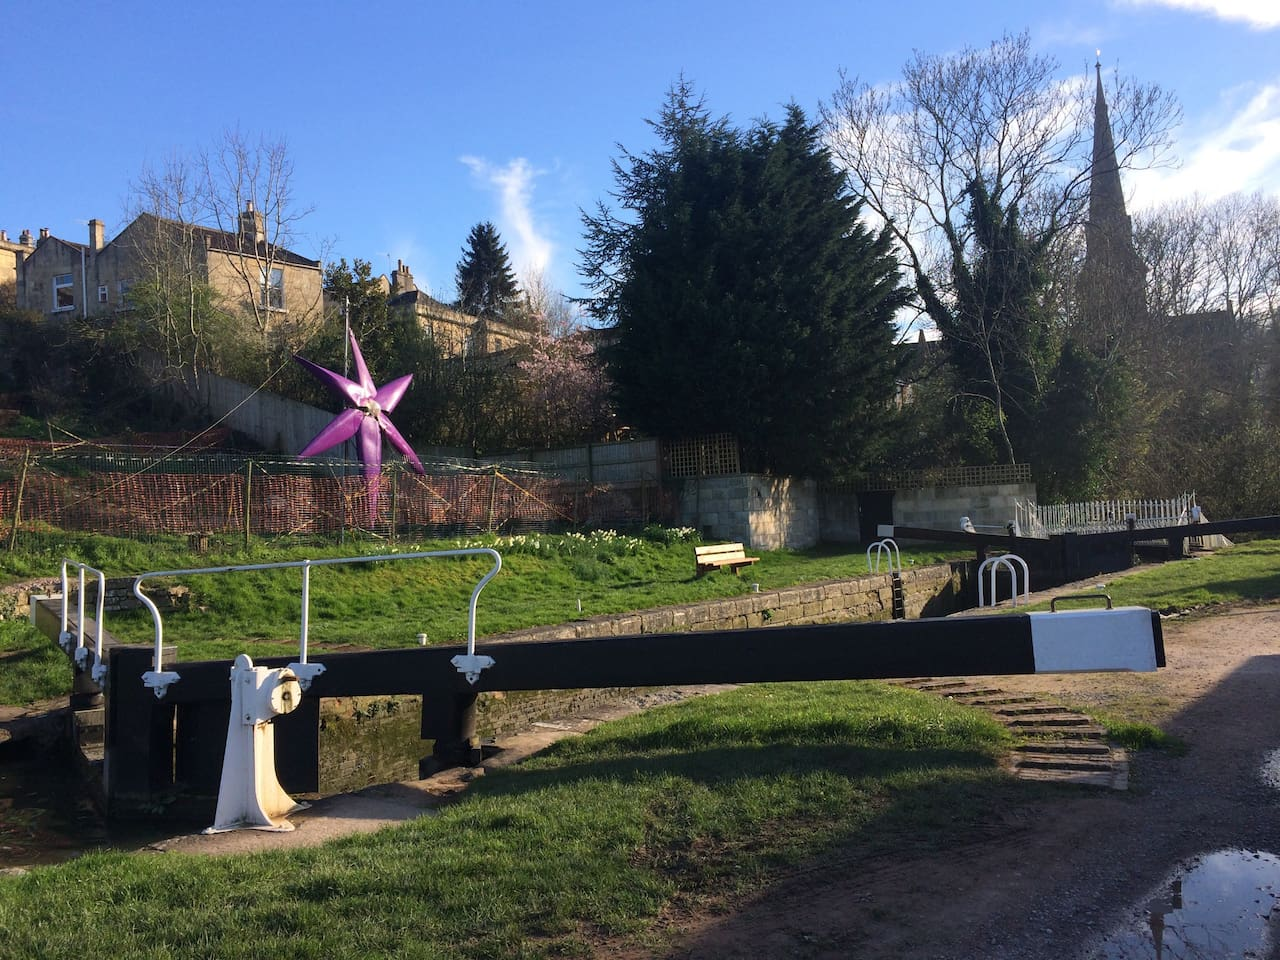 The beautiful Kennet and Avon canal in Widcombe is where you will find us!